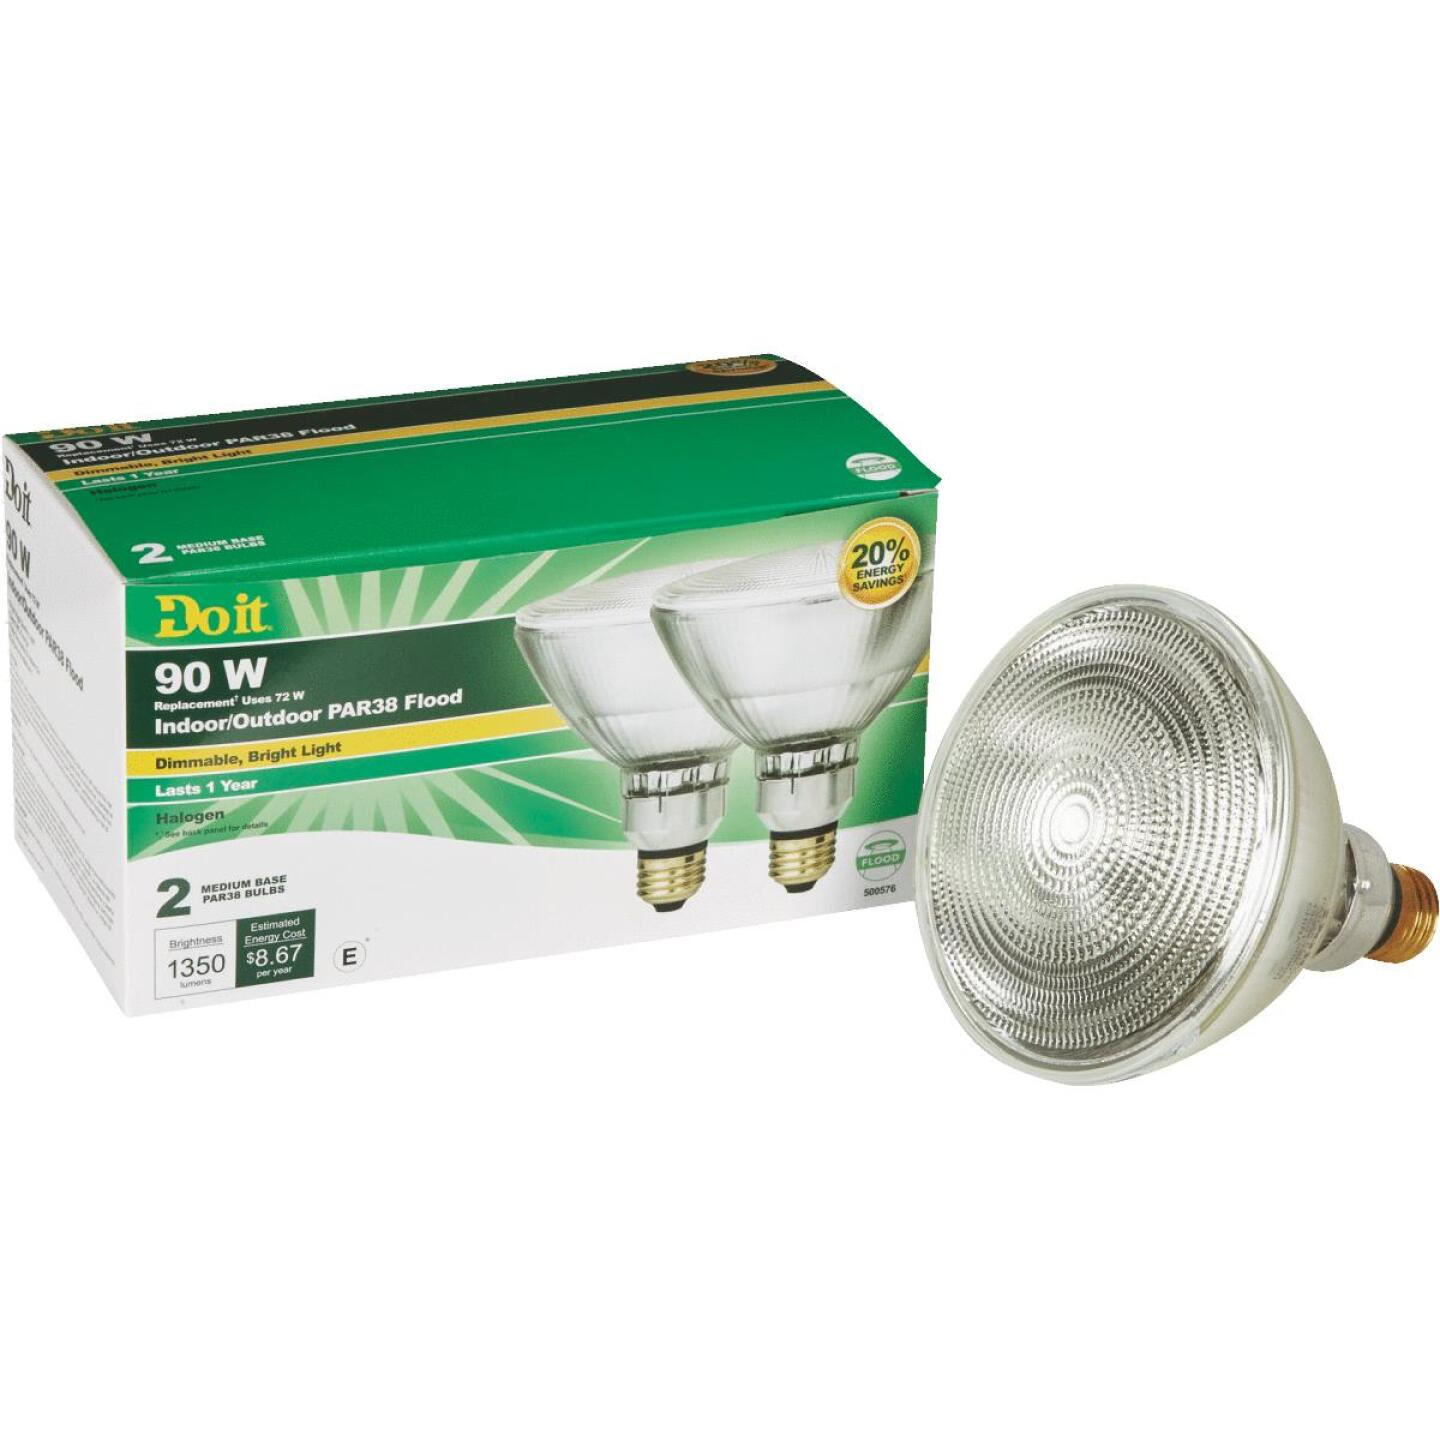 Do it 90W Equivalent Clear Medium Base PAR38 Halogen Floodlight Light Bulb (2-Pack) Image 1